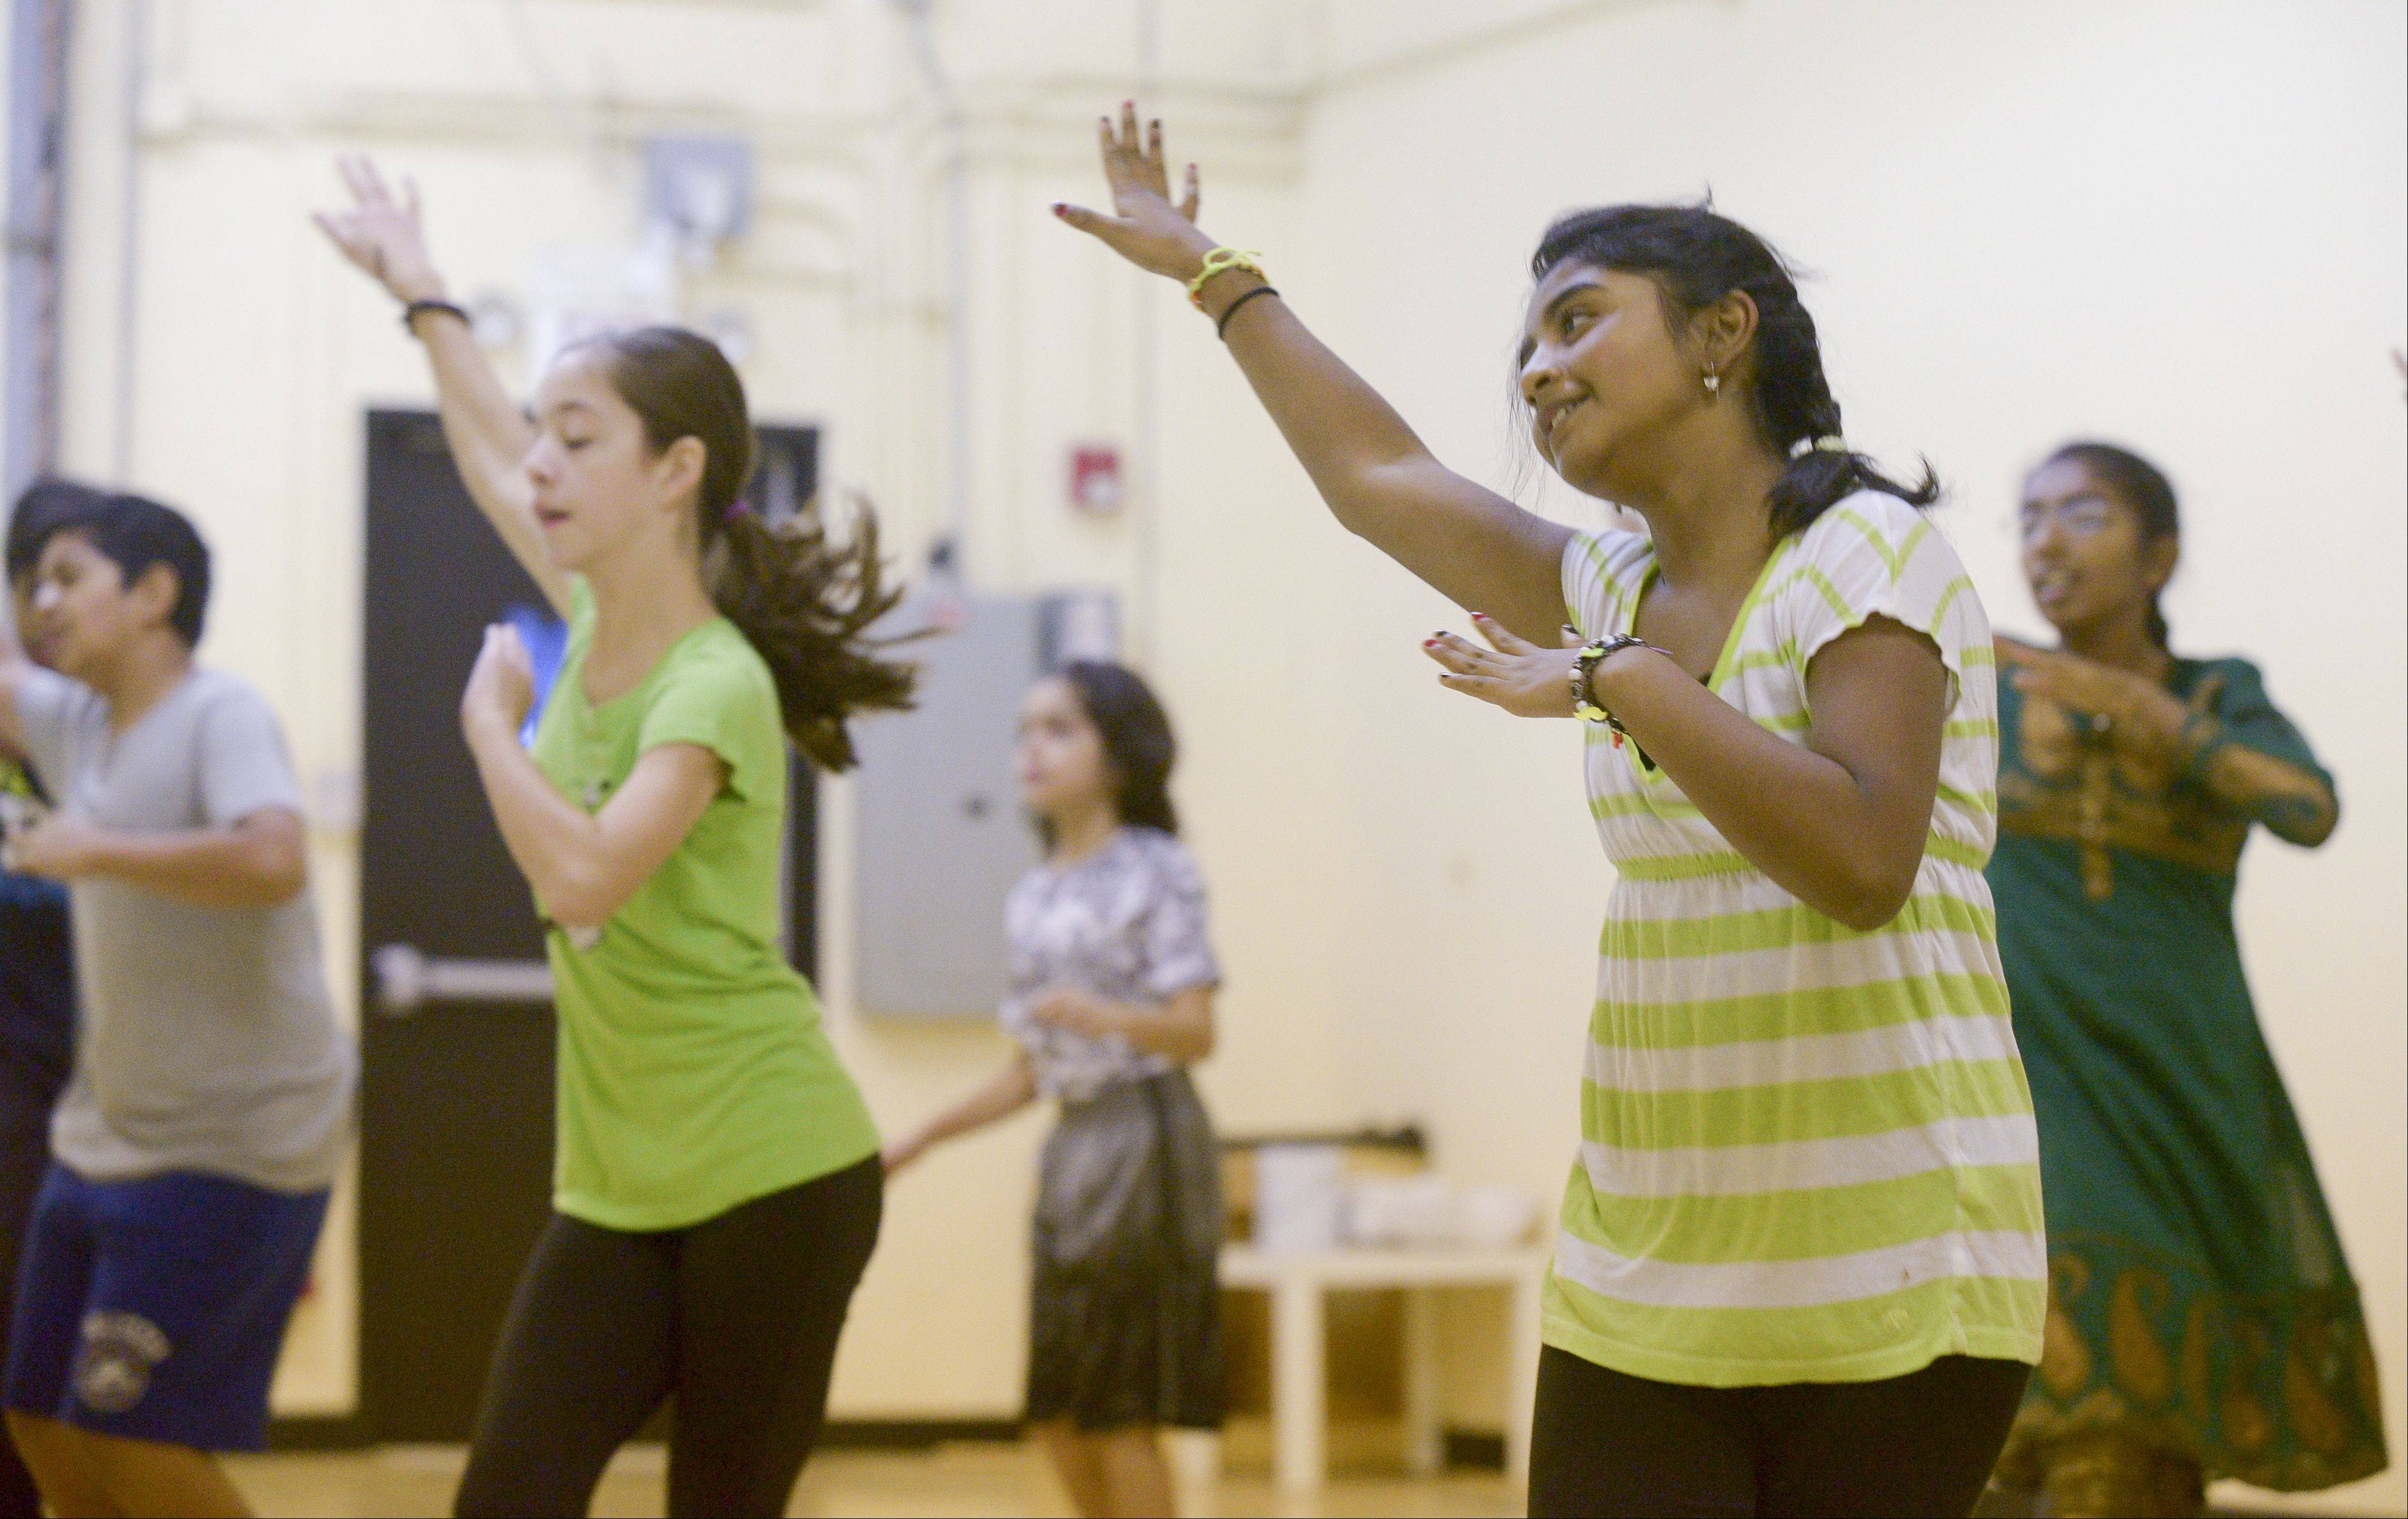 Bollywood Rhythms students such as 12-year-old Shreya Magesh of Oswego, right, will perform Sunday along the course of the Inaugural Edward Hospital Naperville Marathon and Half Marathon.